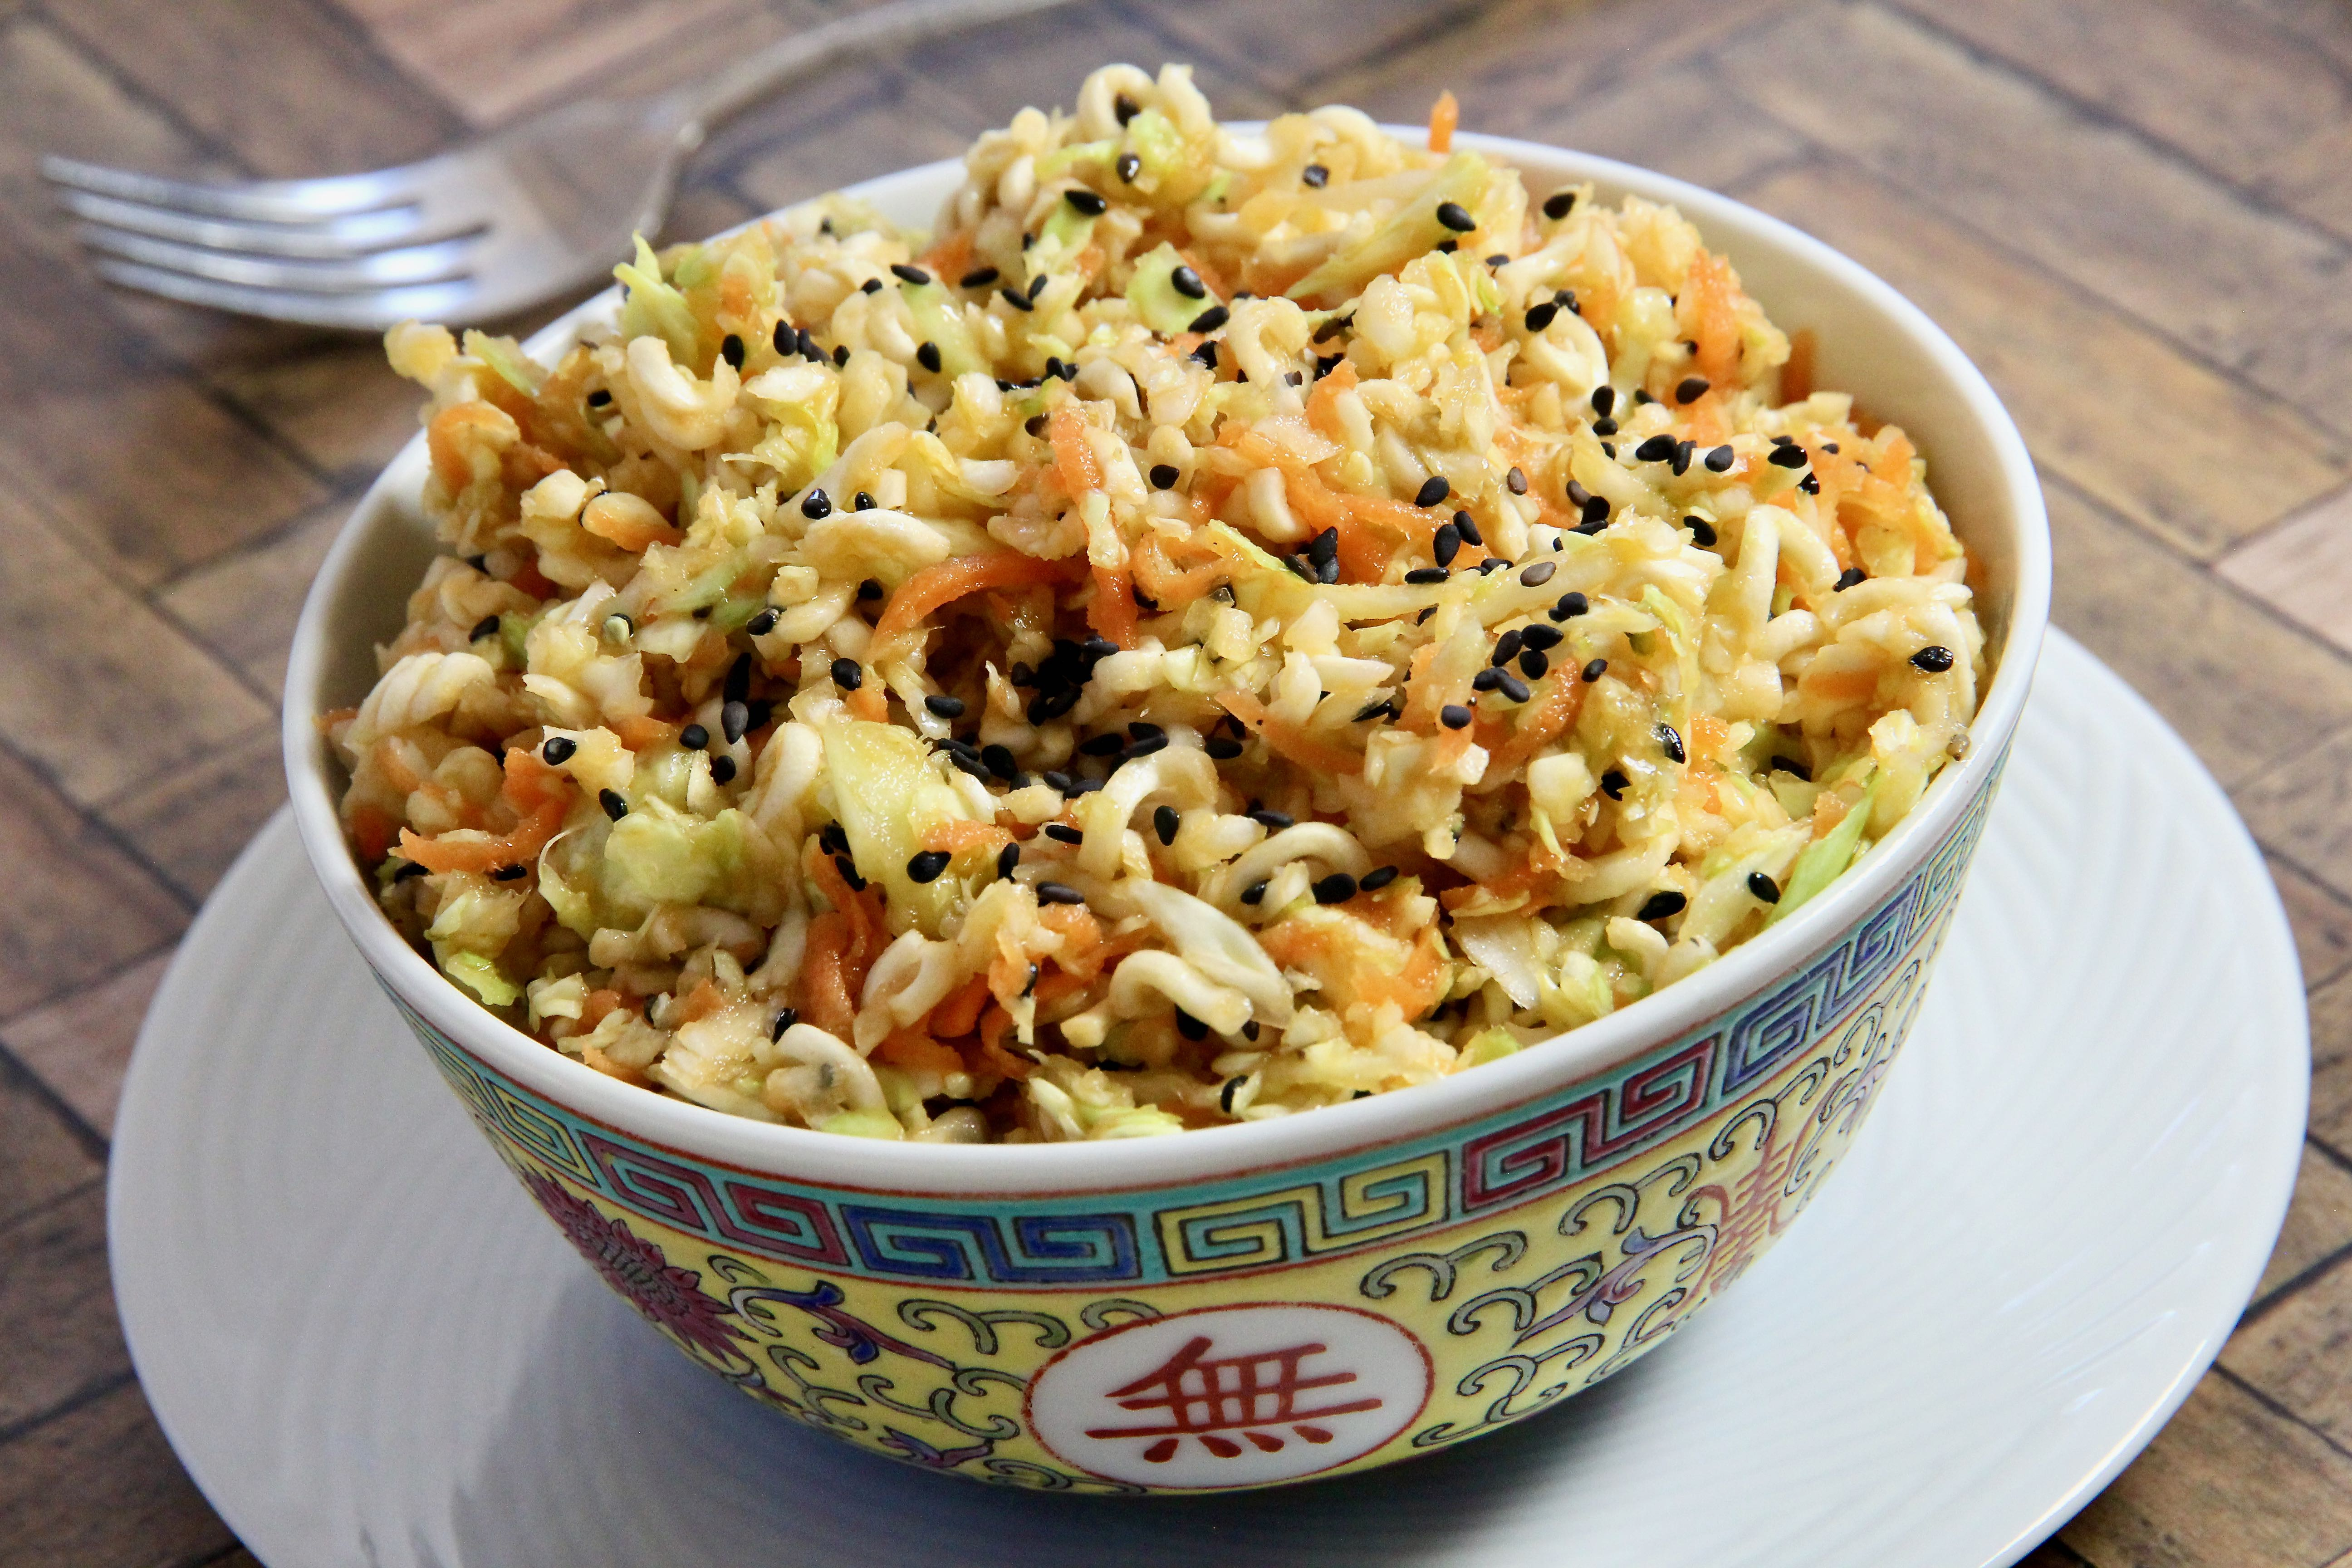 Chinese Cabbage Salad Recipe Allrecipes